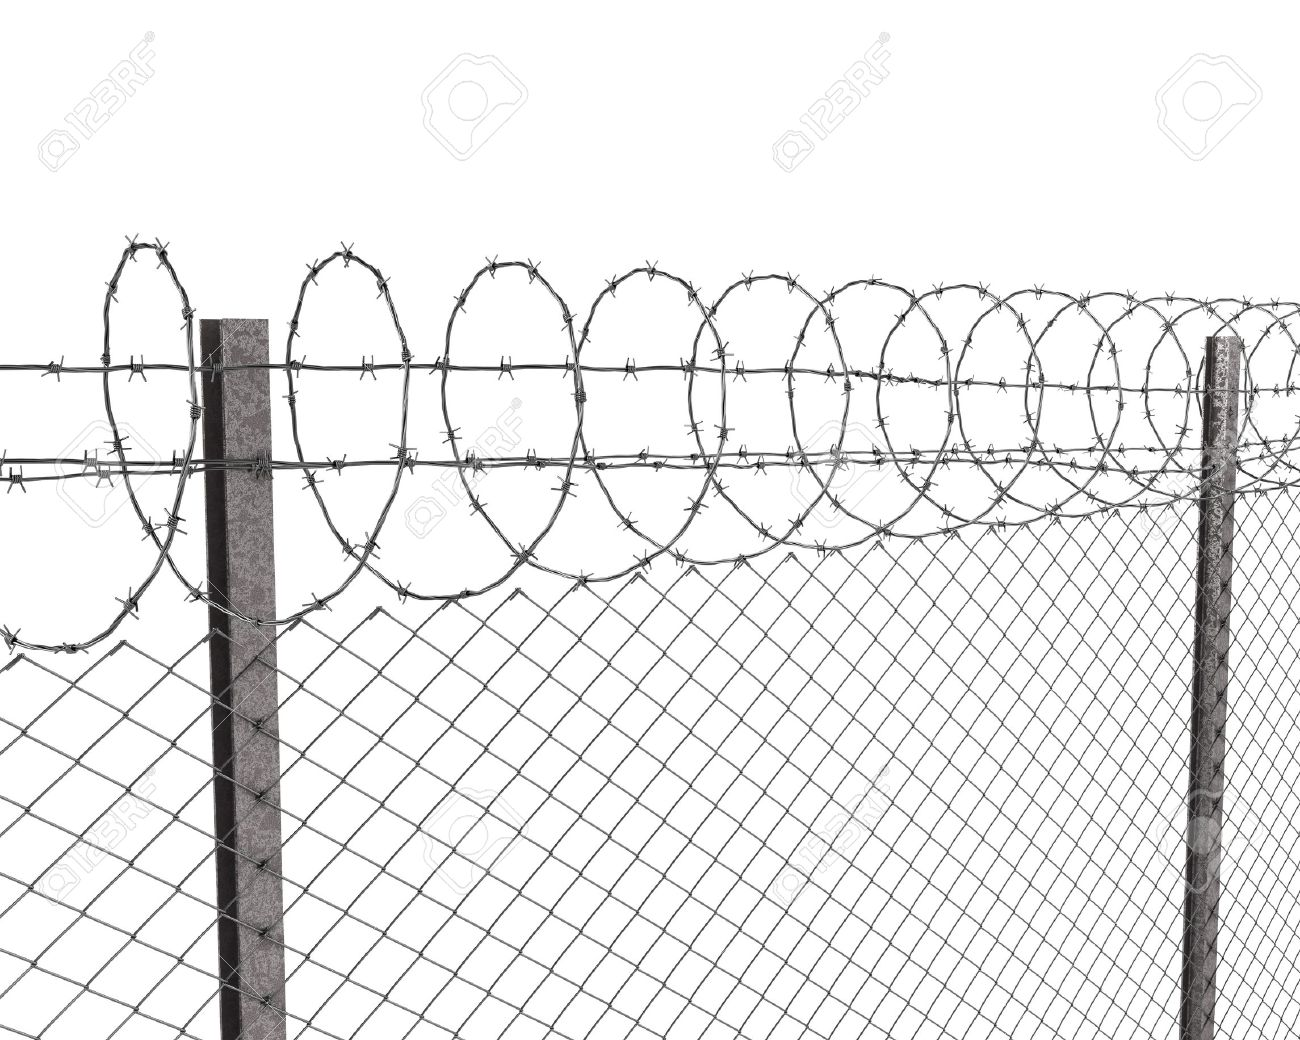 Wire clipart fencing wire Clear 2017 background Fence Wire